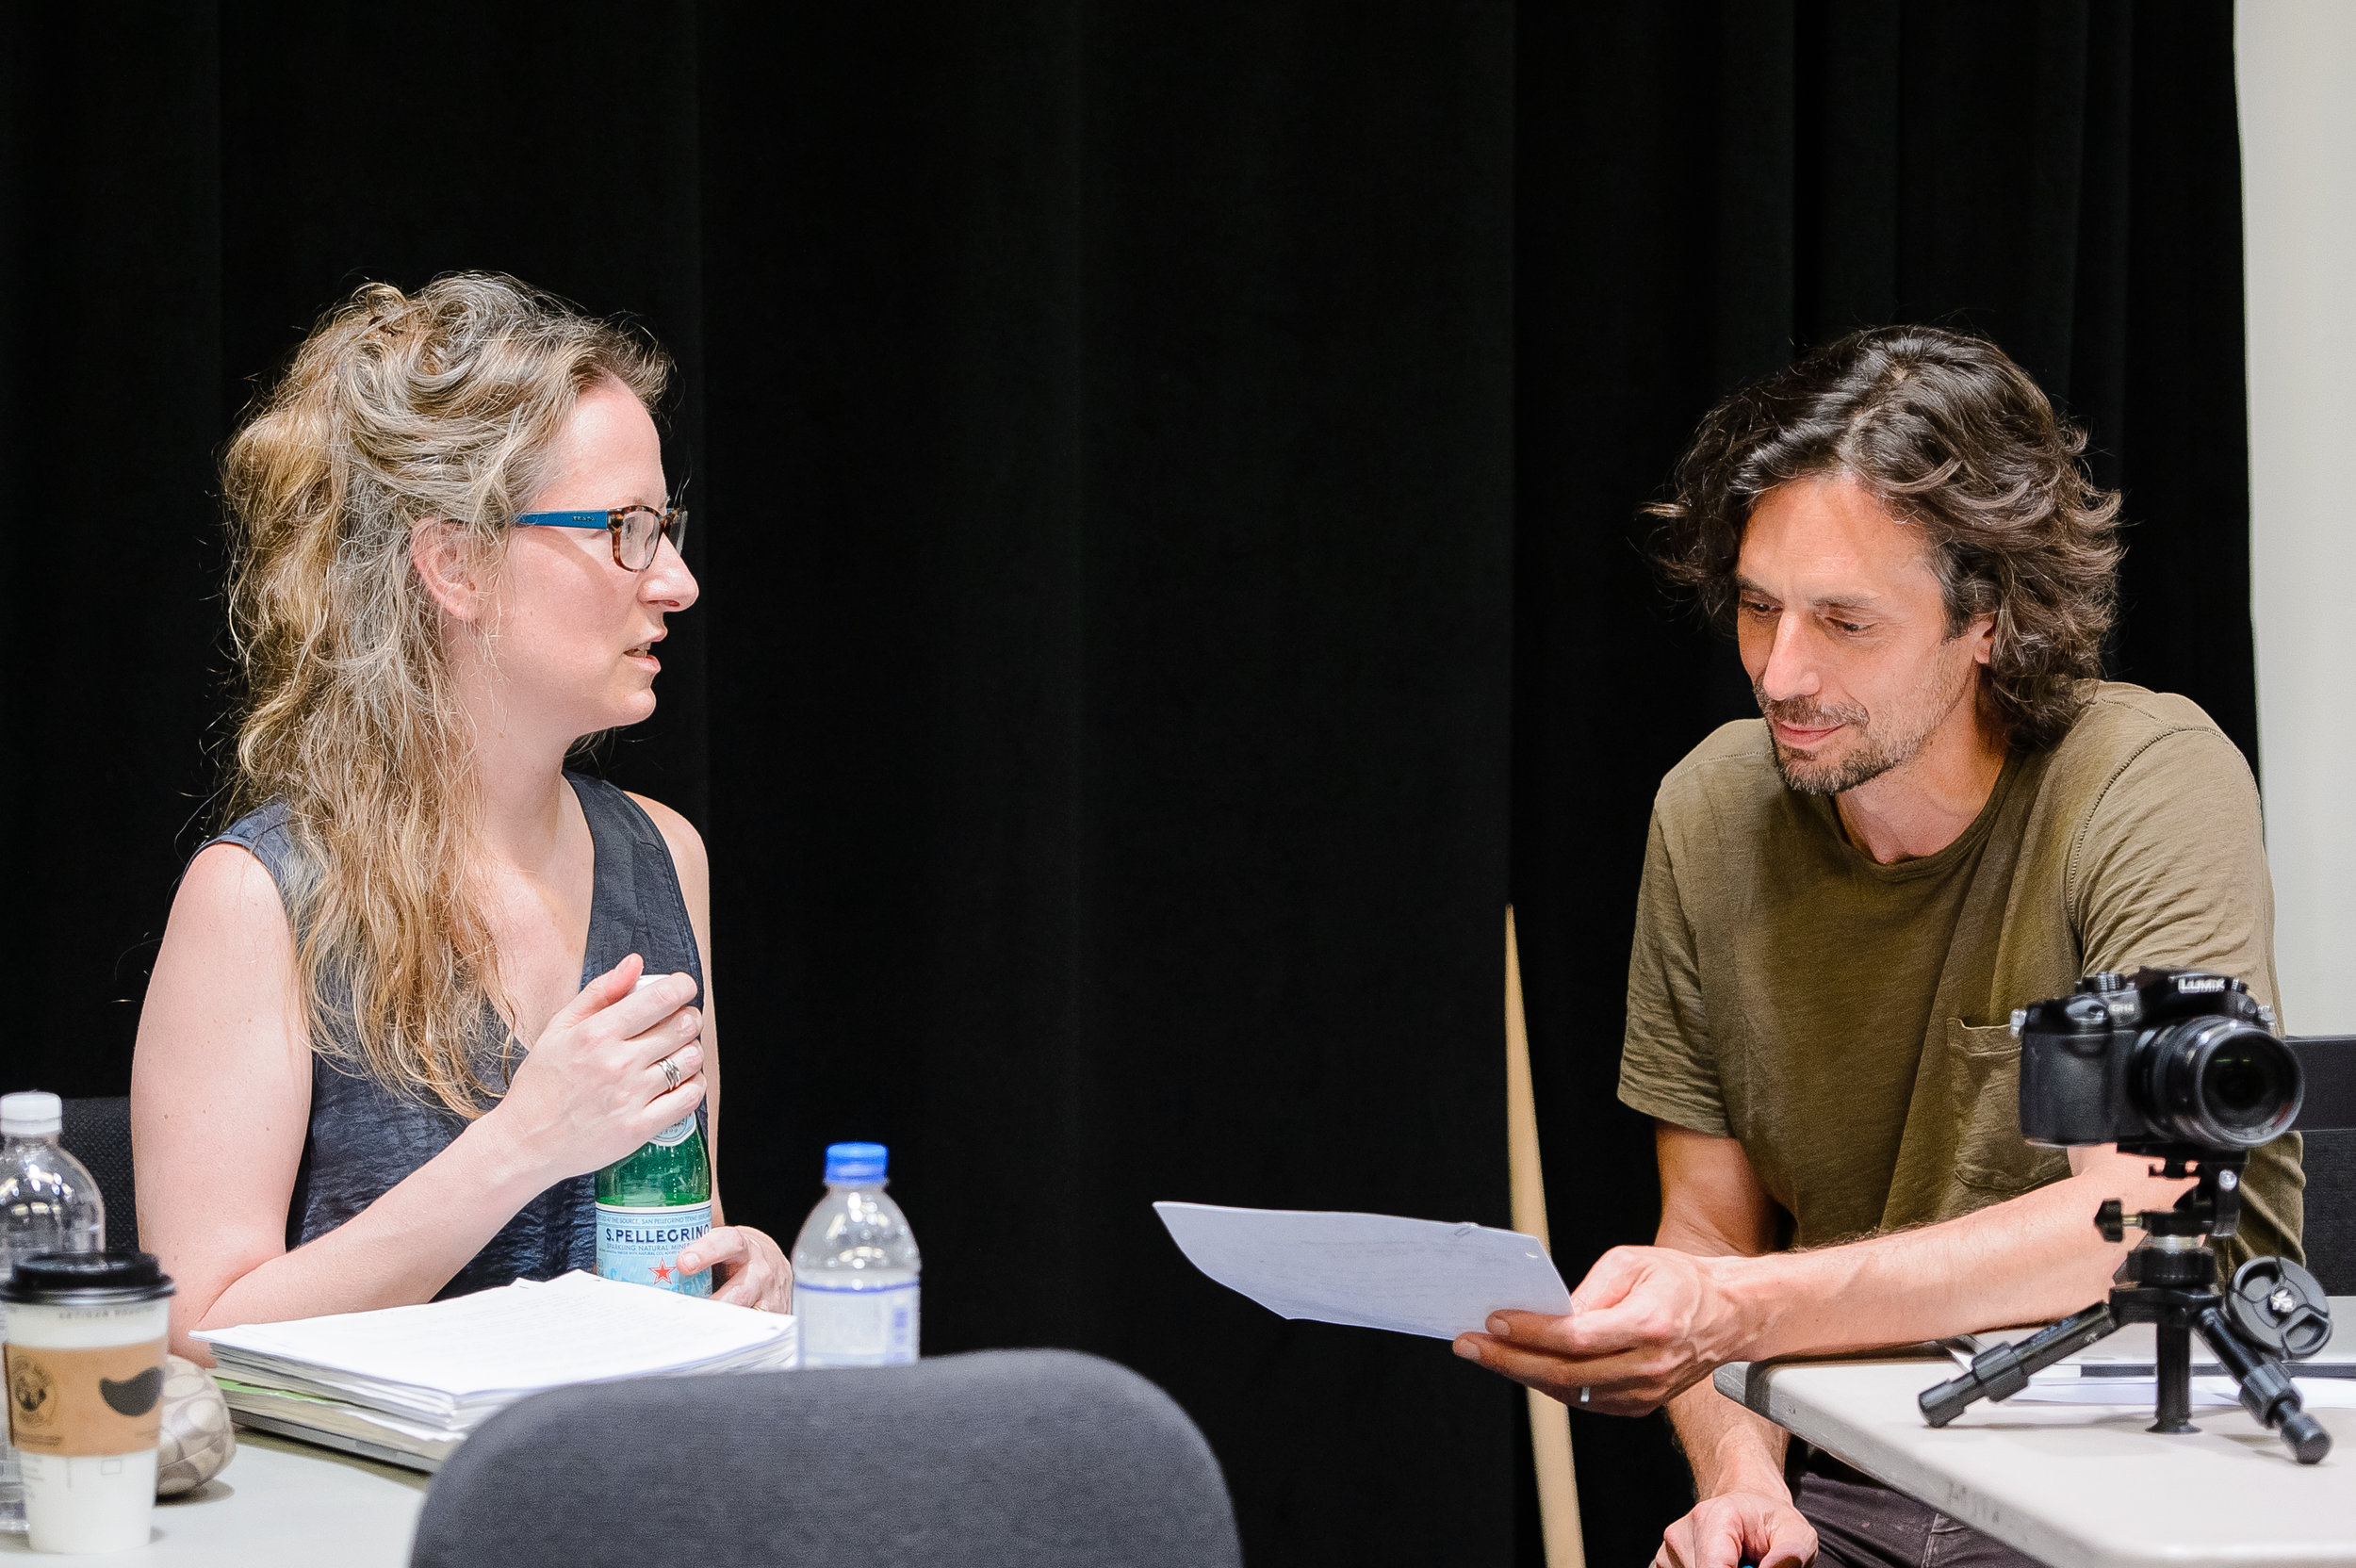 QUIXOTE lead creative team: Amy Beth Kirsten (composer/librettist) and Mark DeChiazza (director/designer) consult during the July 2016 workshop at Montclair State University. (Photo by Gennadi Novash courtesy of Peak Performances @ Montclair State University)